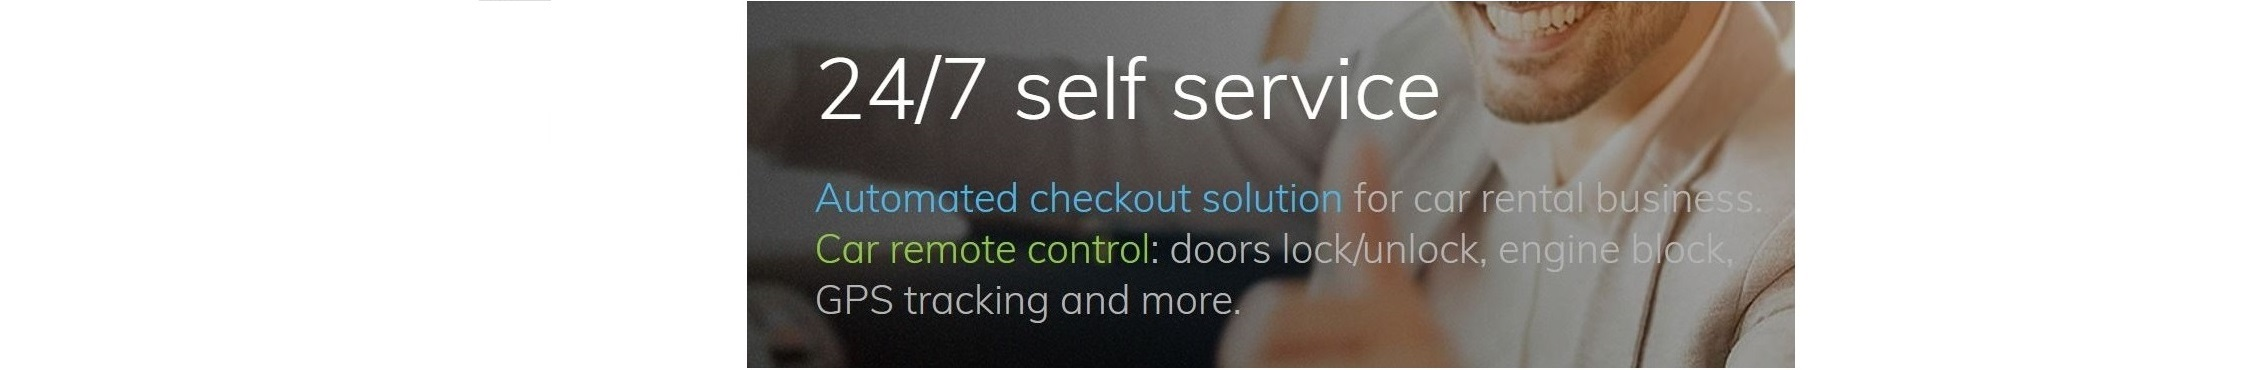 24/7 self-service for car rental customers